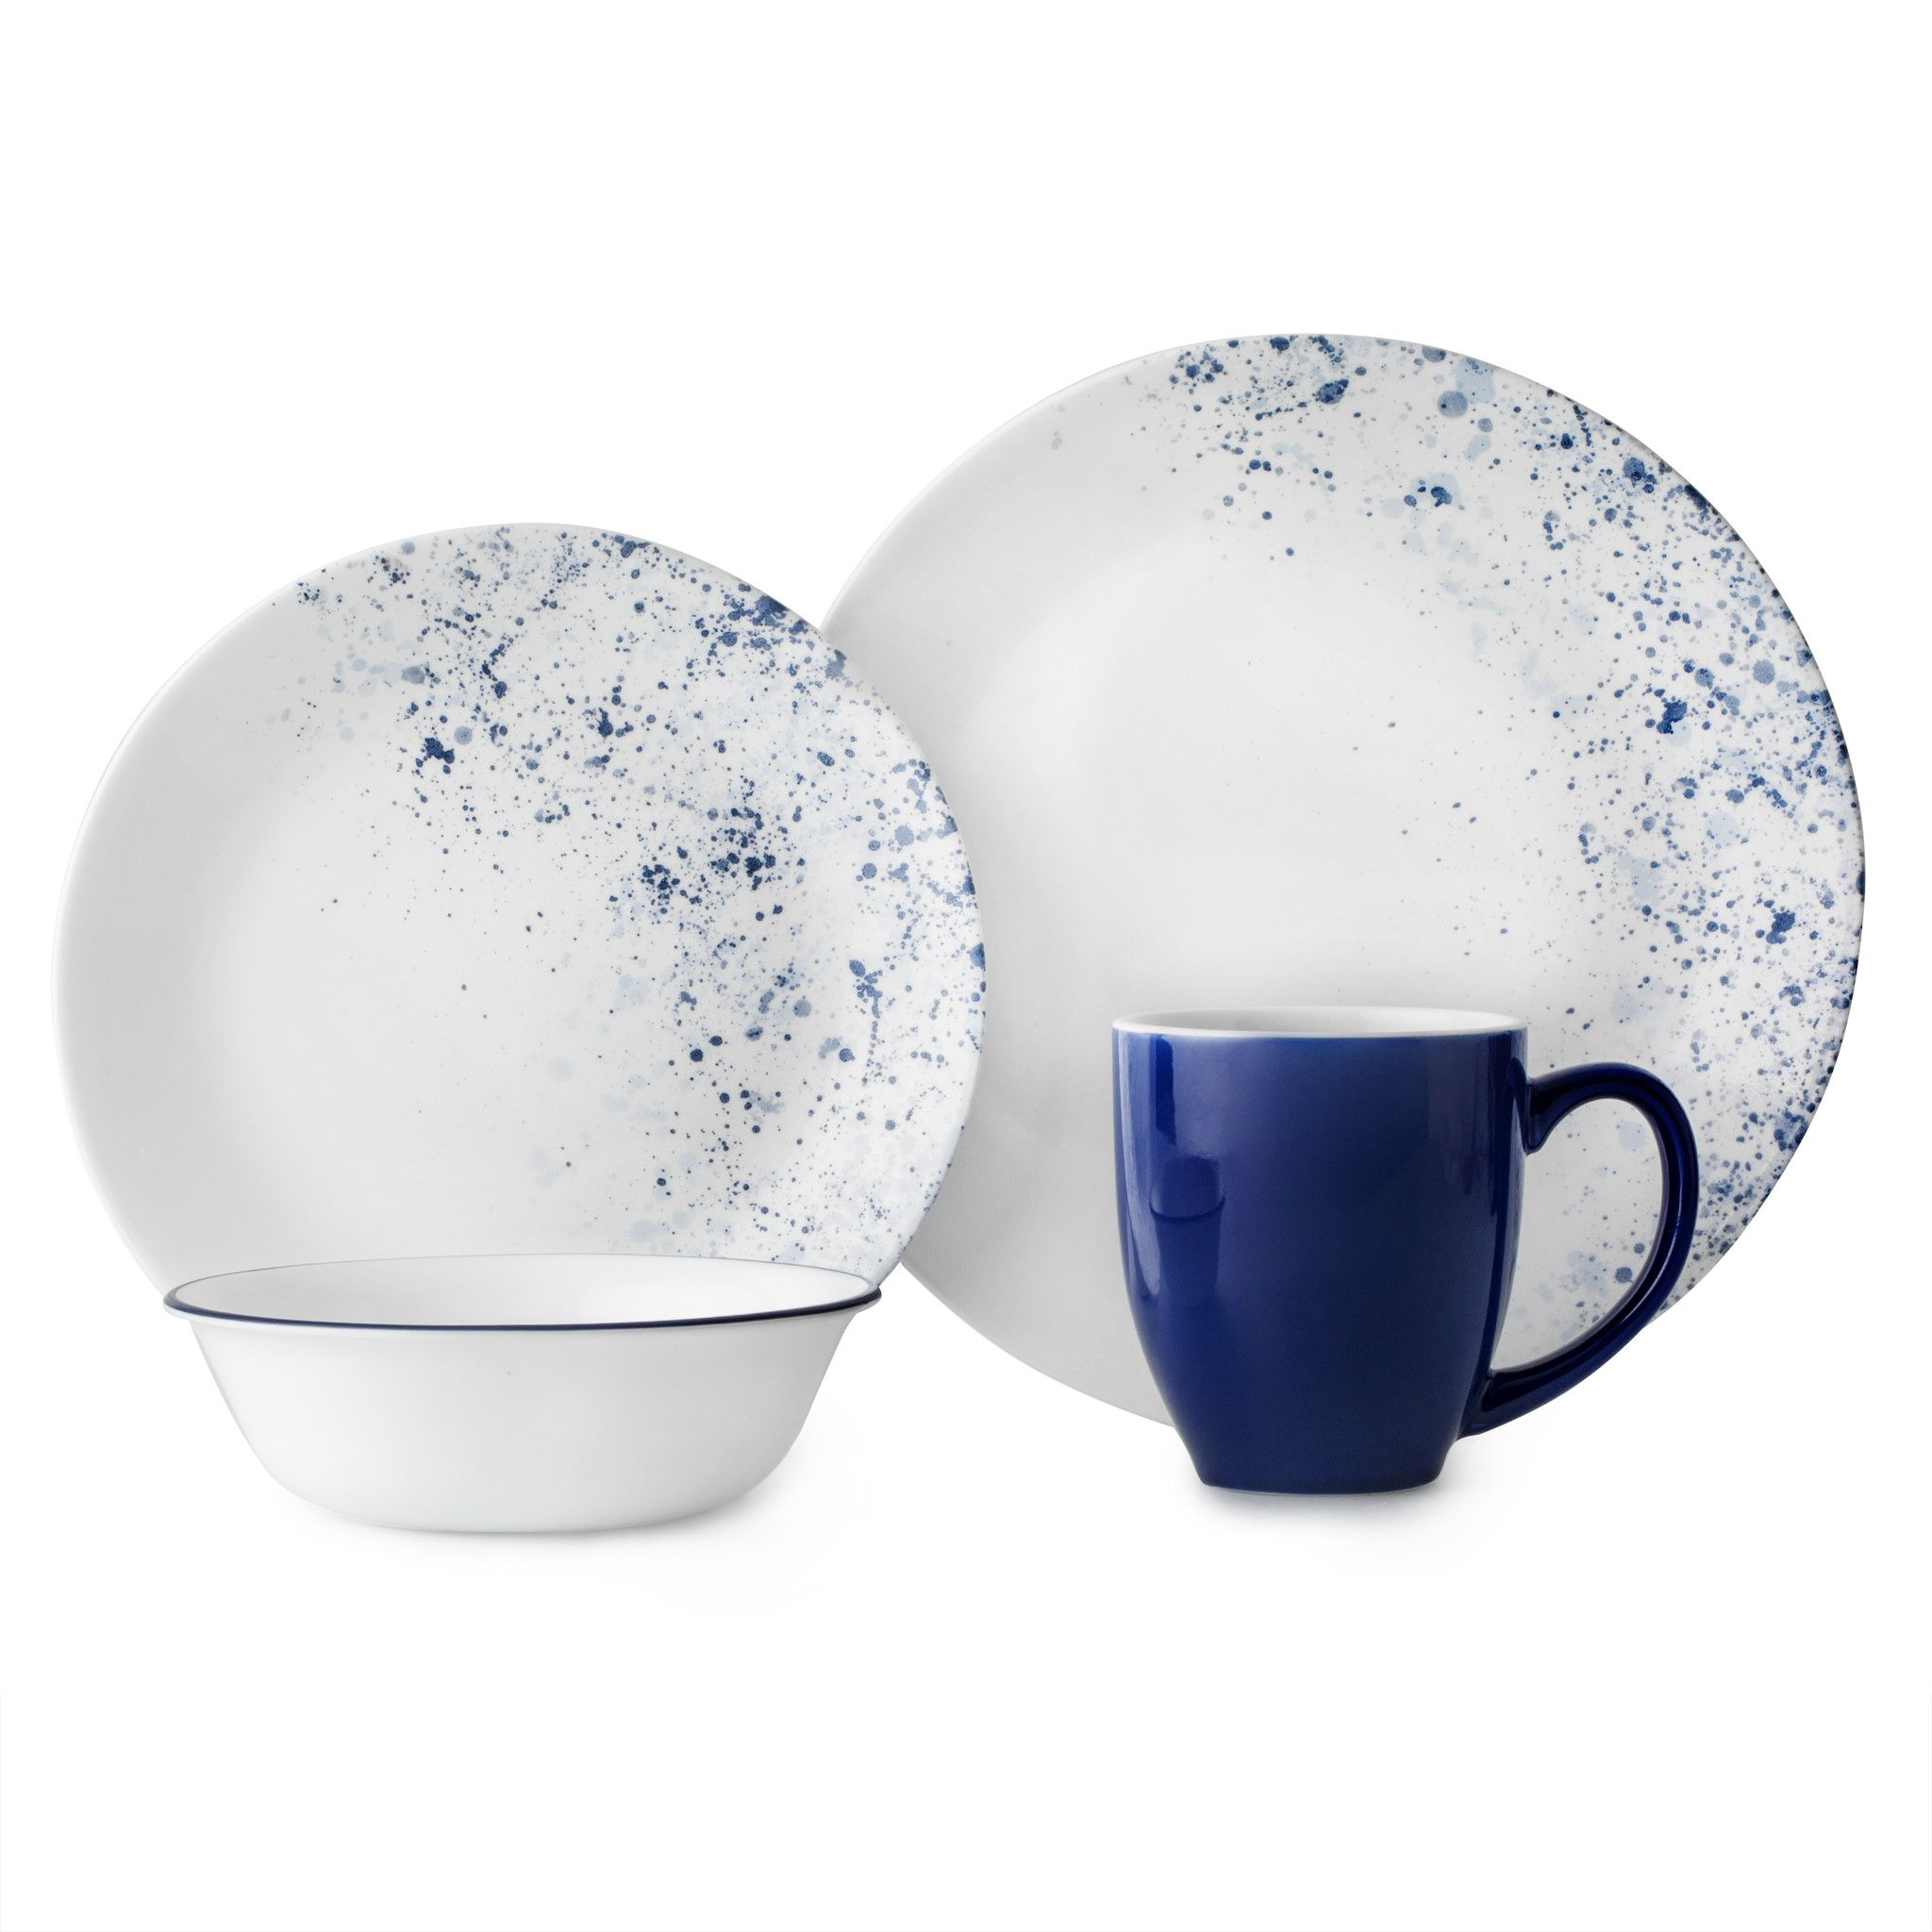 set of two blue plates with speckles